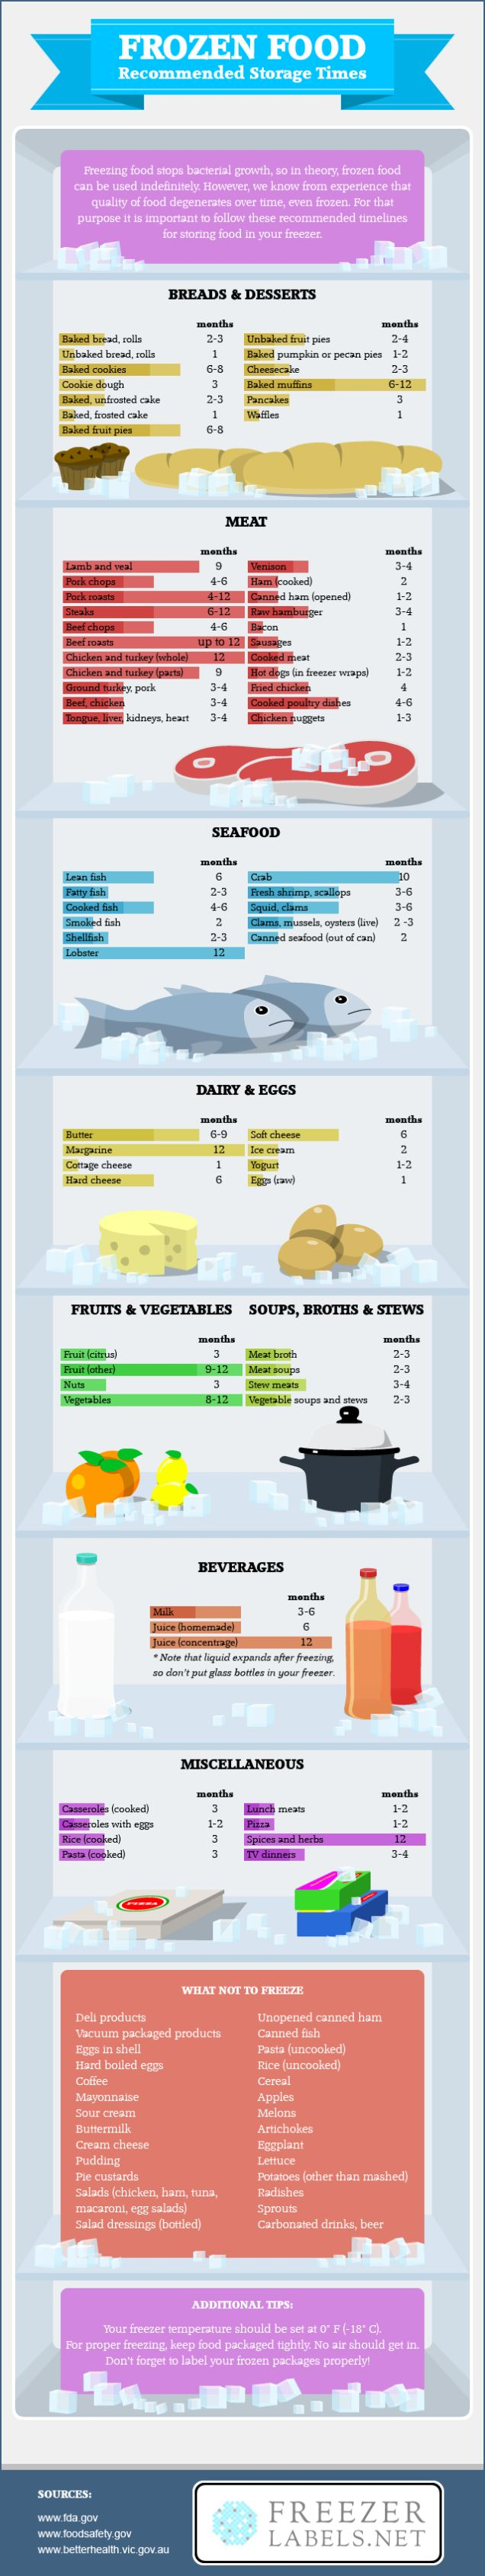 How long can you keep different types of food in the freezer?  See the full size here: http://sploid.gizmodo.com/how-long-can-you-keep-different-types-of-food-in-the-fr-1703548008/?utm_content=bufferdfd16&utm_medium=social&utm_source=pinterest.com&utm_campaign=buffer